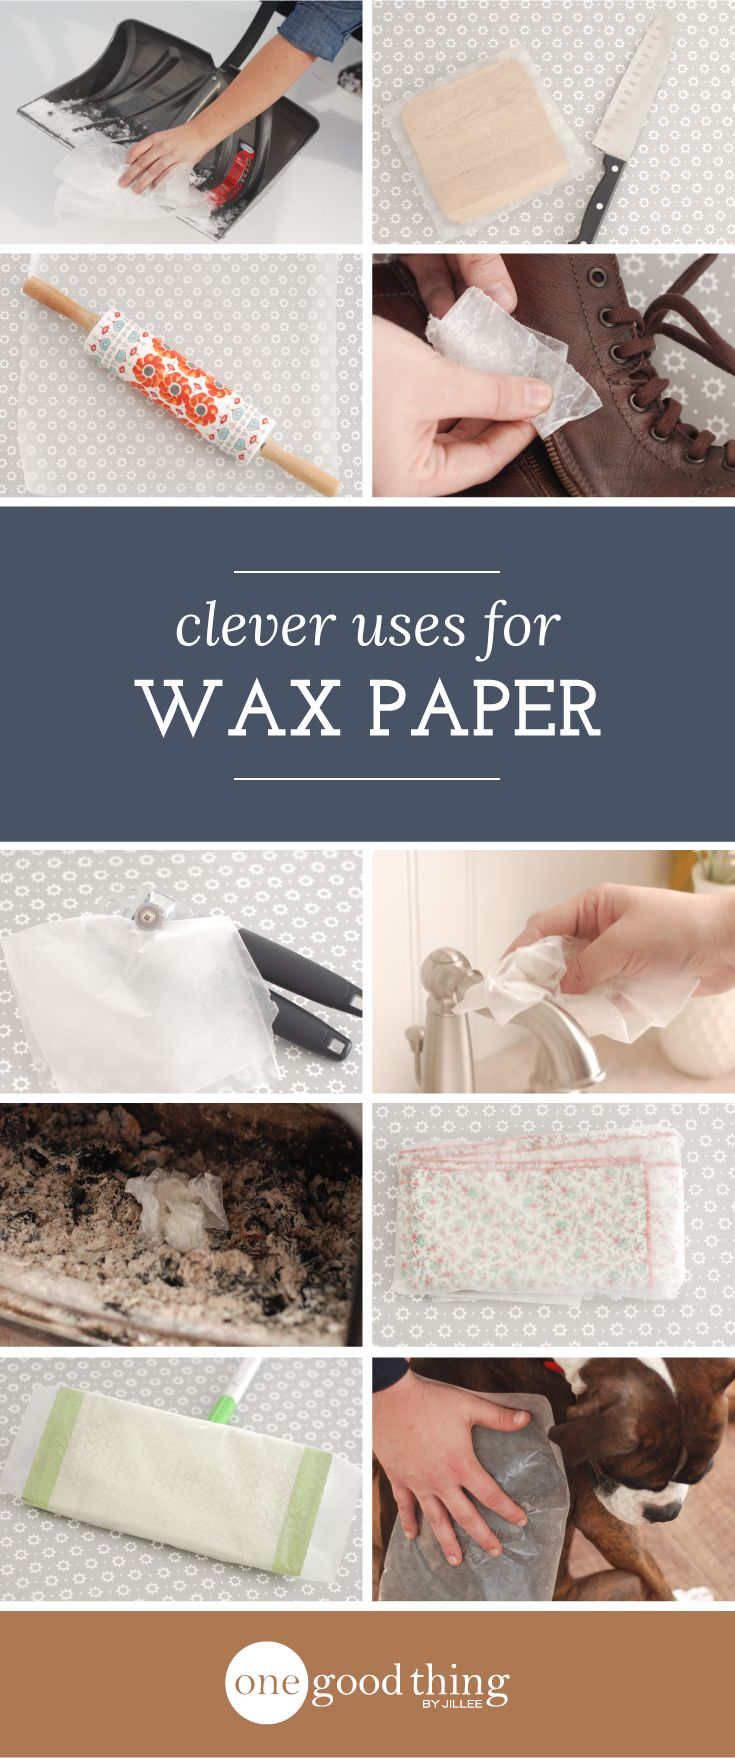 25 best ideas about wax paper crafts on pinterest printing photos bougie hair and wax paper. Black Bedroom Furniture Sets. Home Design Ideas